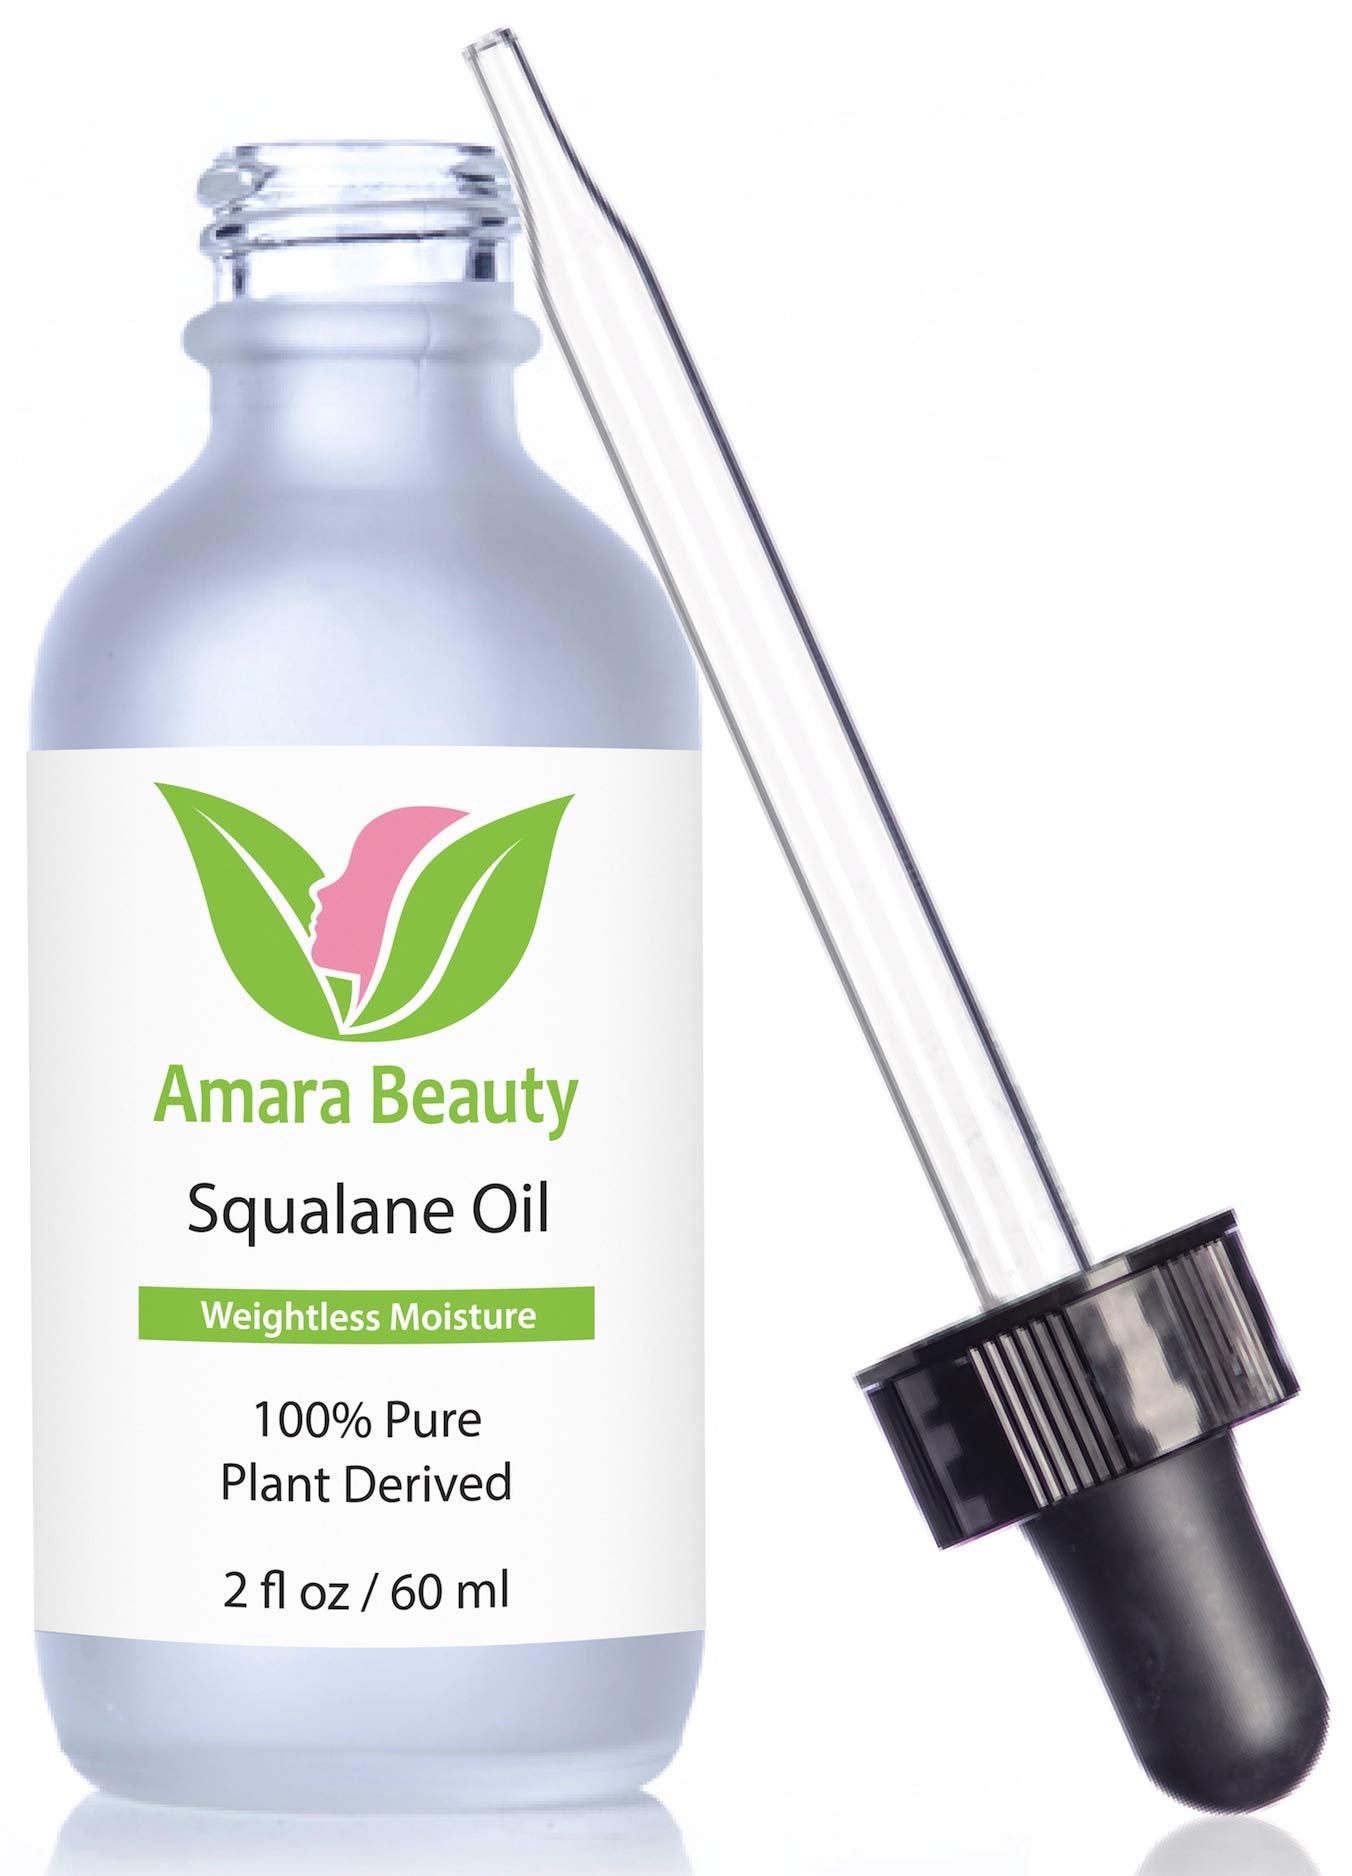 Amara Beauty Squalane Oil Moisturizer with 100% Pure Plant Derived Squalane for Face, Body, Skin and Hair, 2 fl. oz. by Amara Beauty